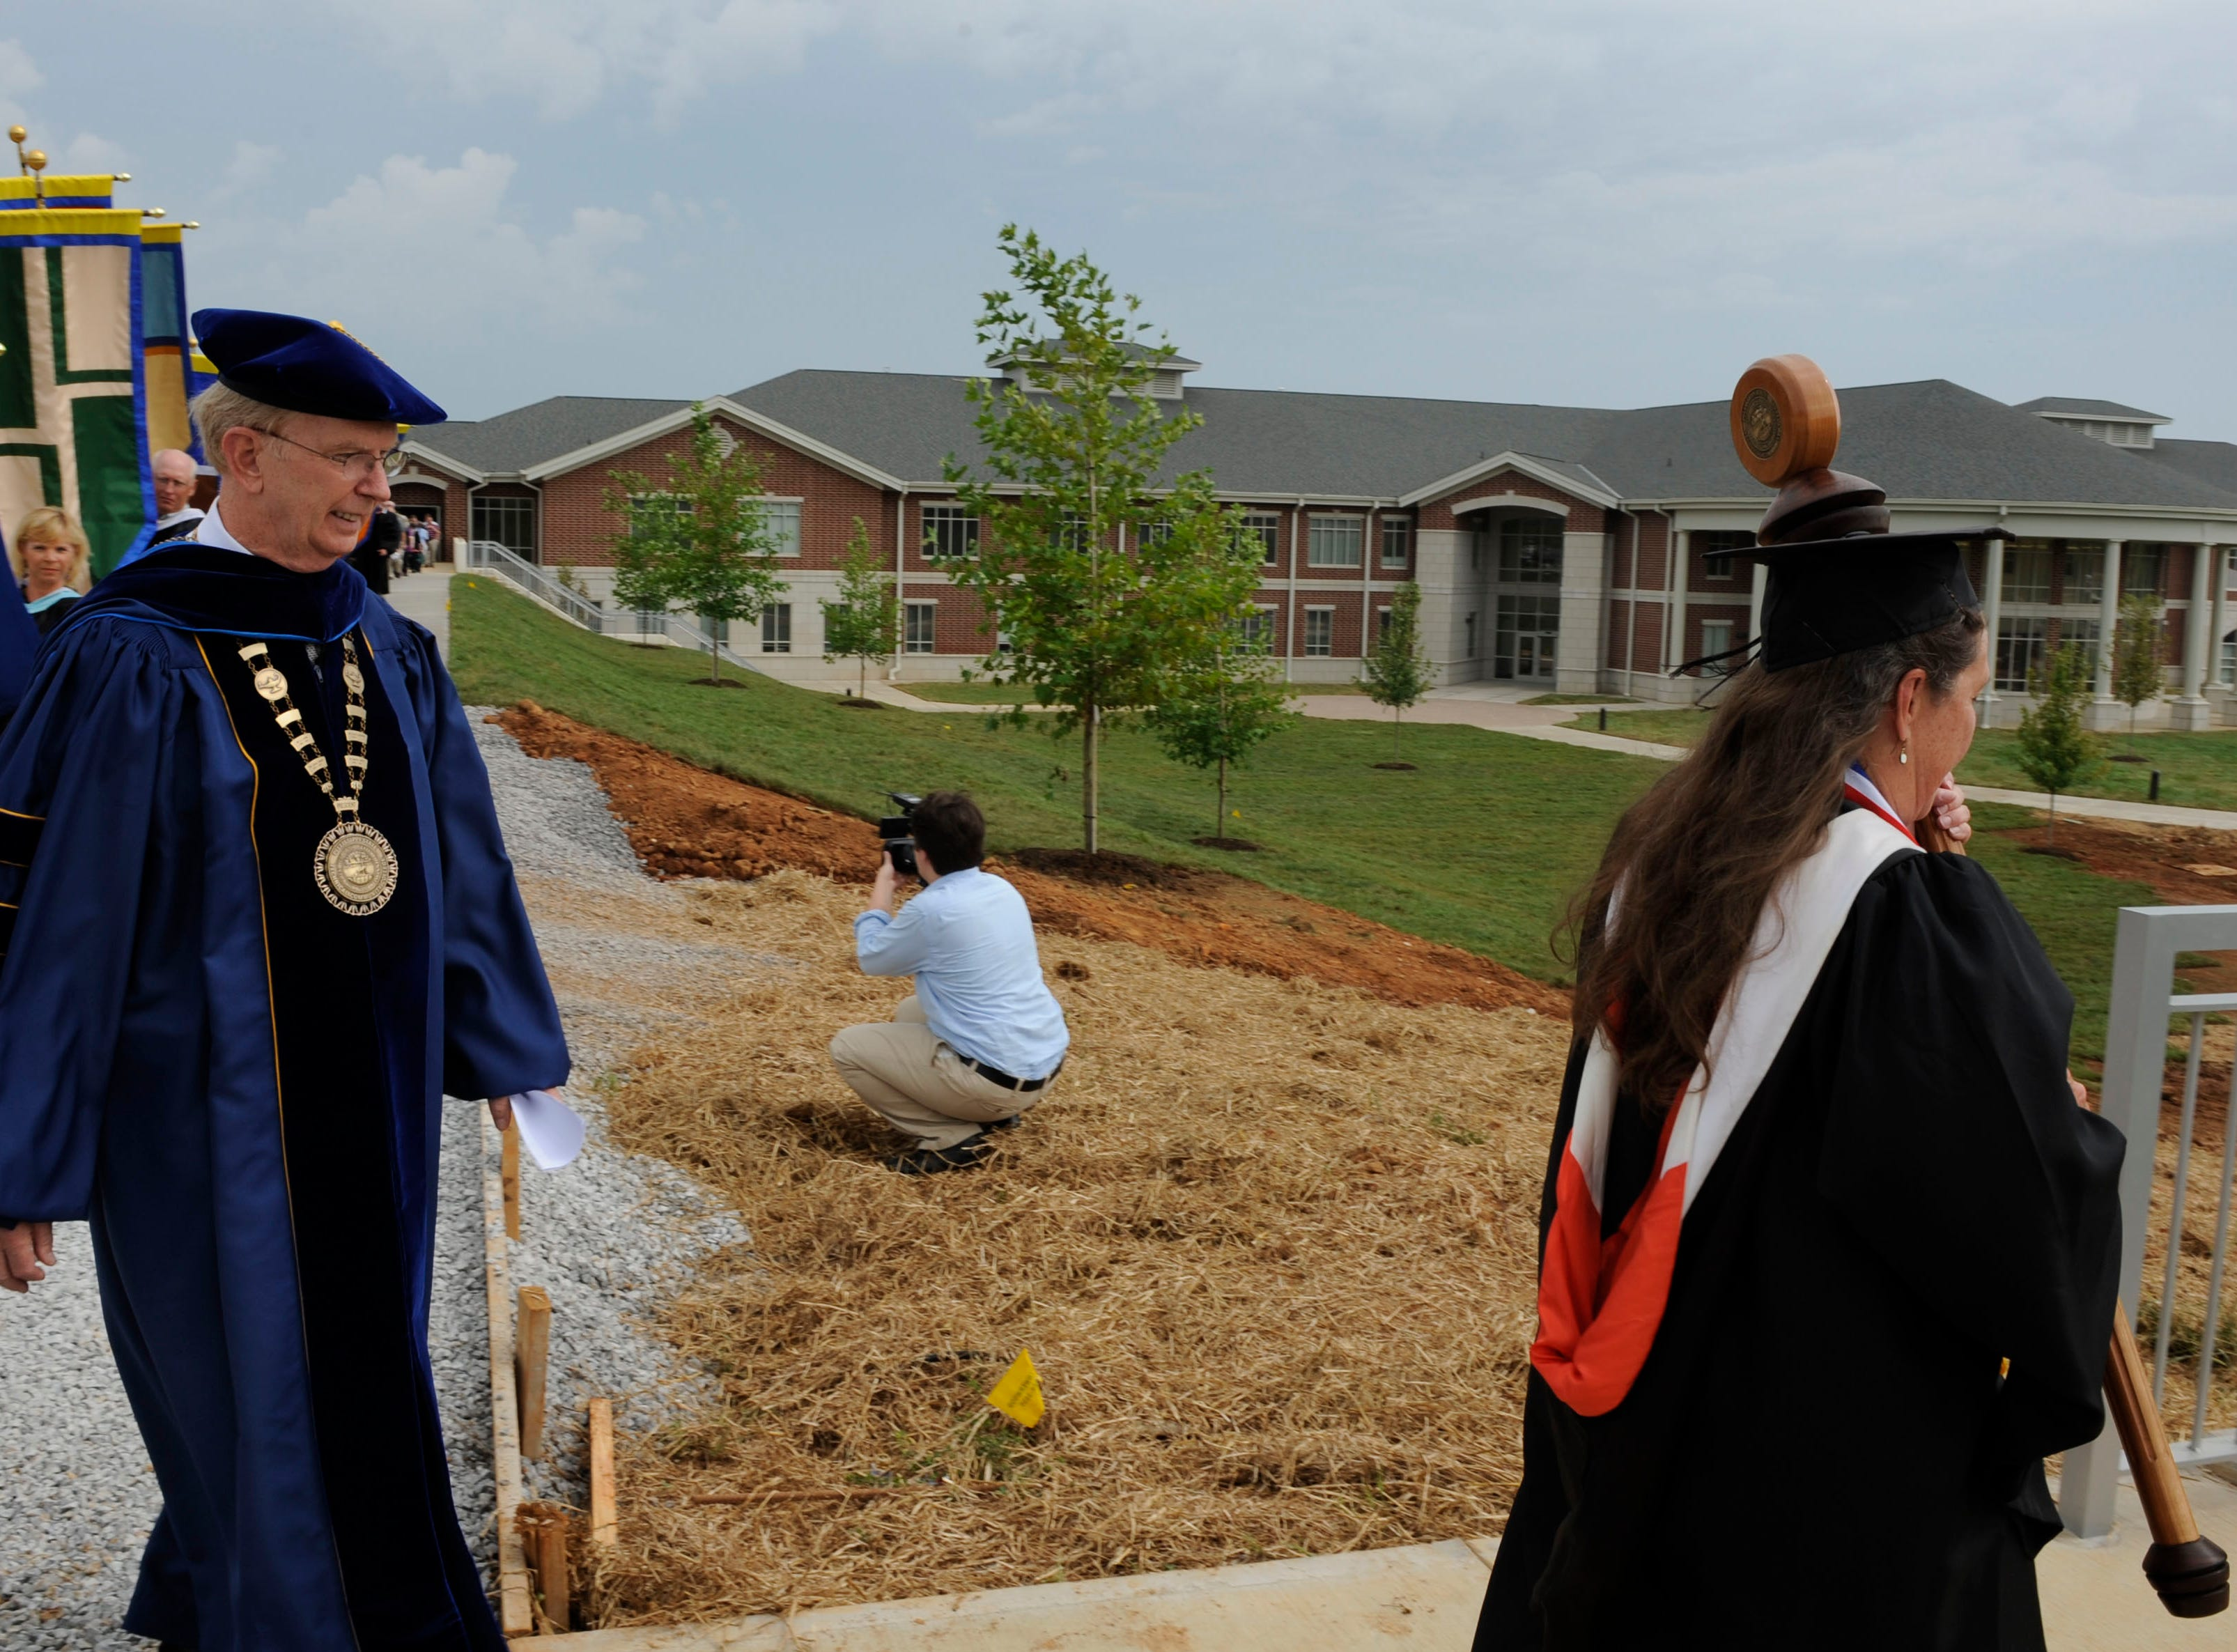 President Allen Edwards follows mace bearer Brenda Ammons during the opening ceremony for the new $22 million Pellissippi State Community College Blount County campus Wednesday, Aug. 18, 2010 in Friendsville.